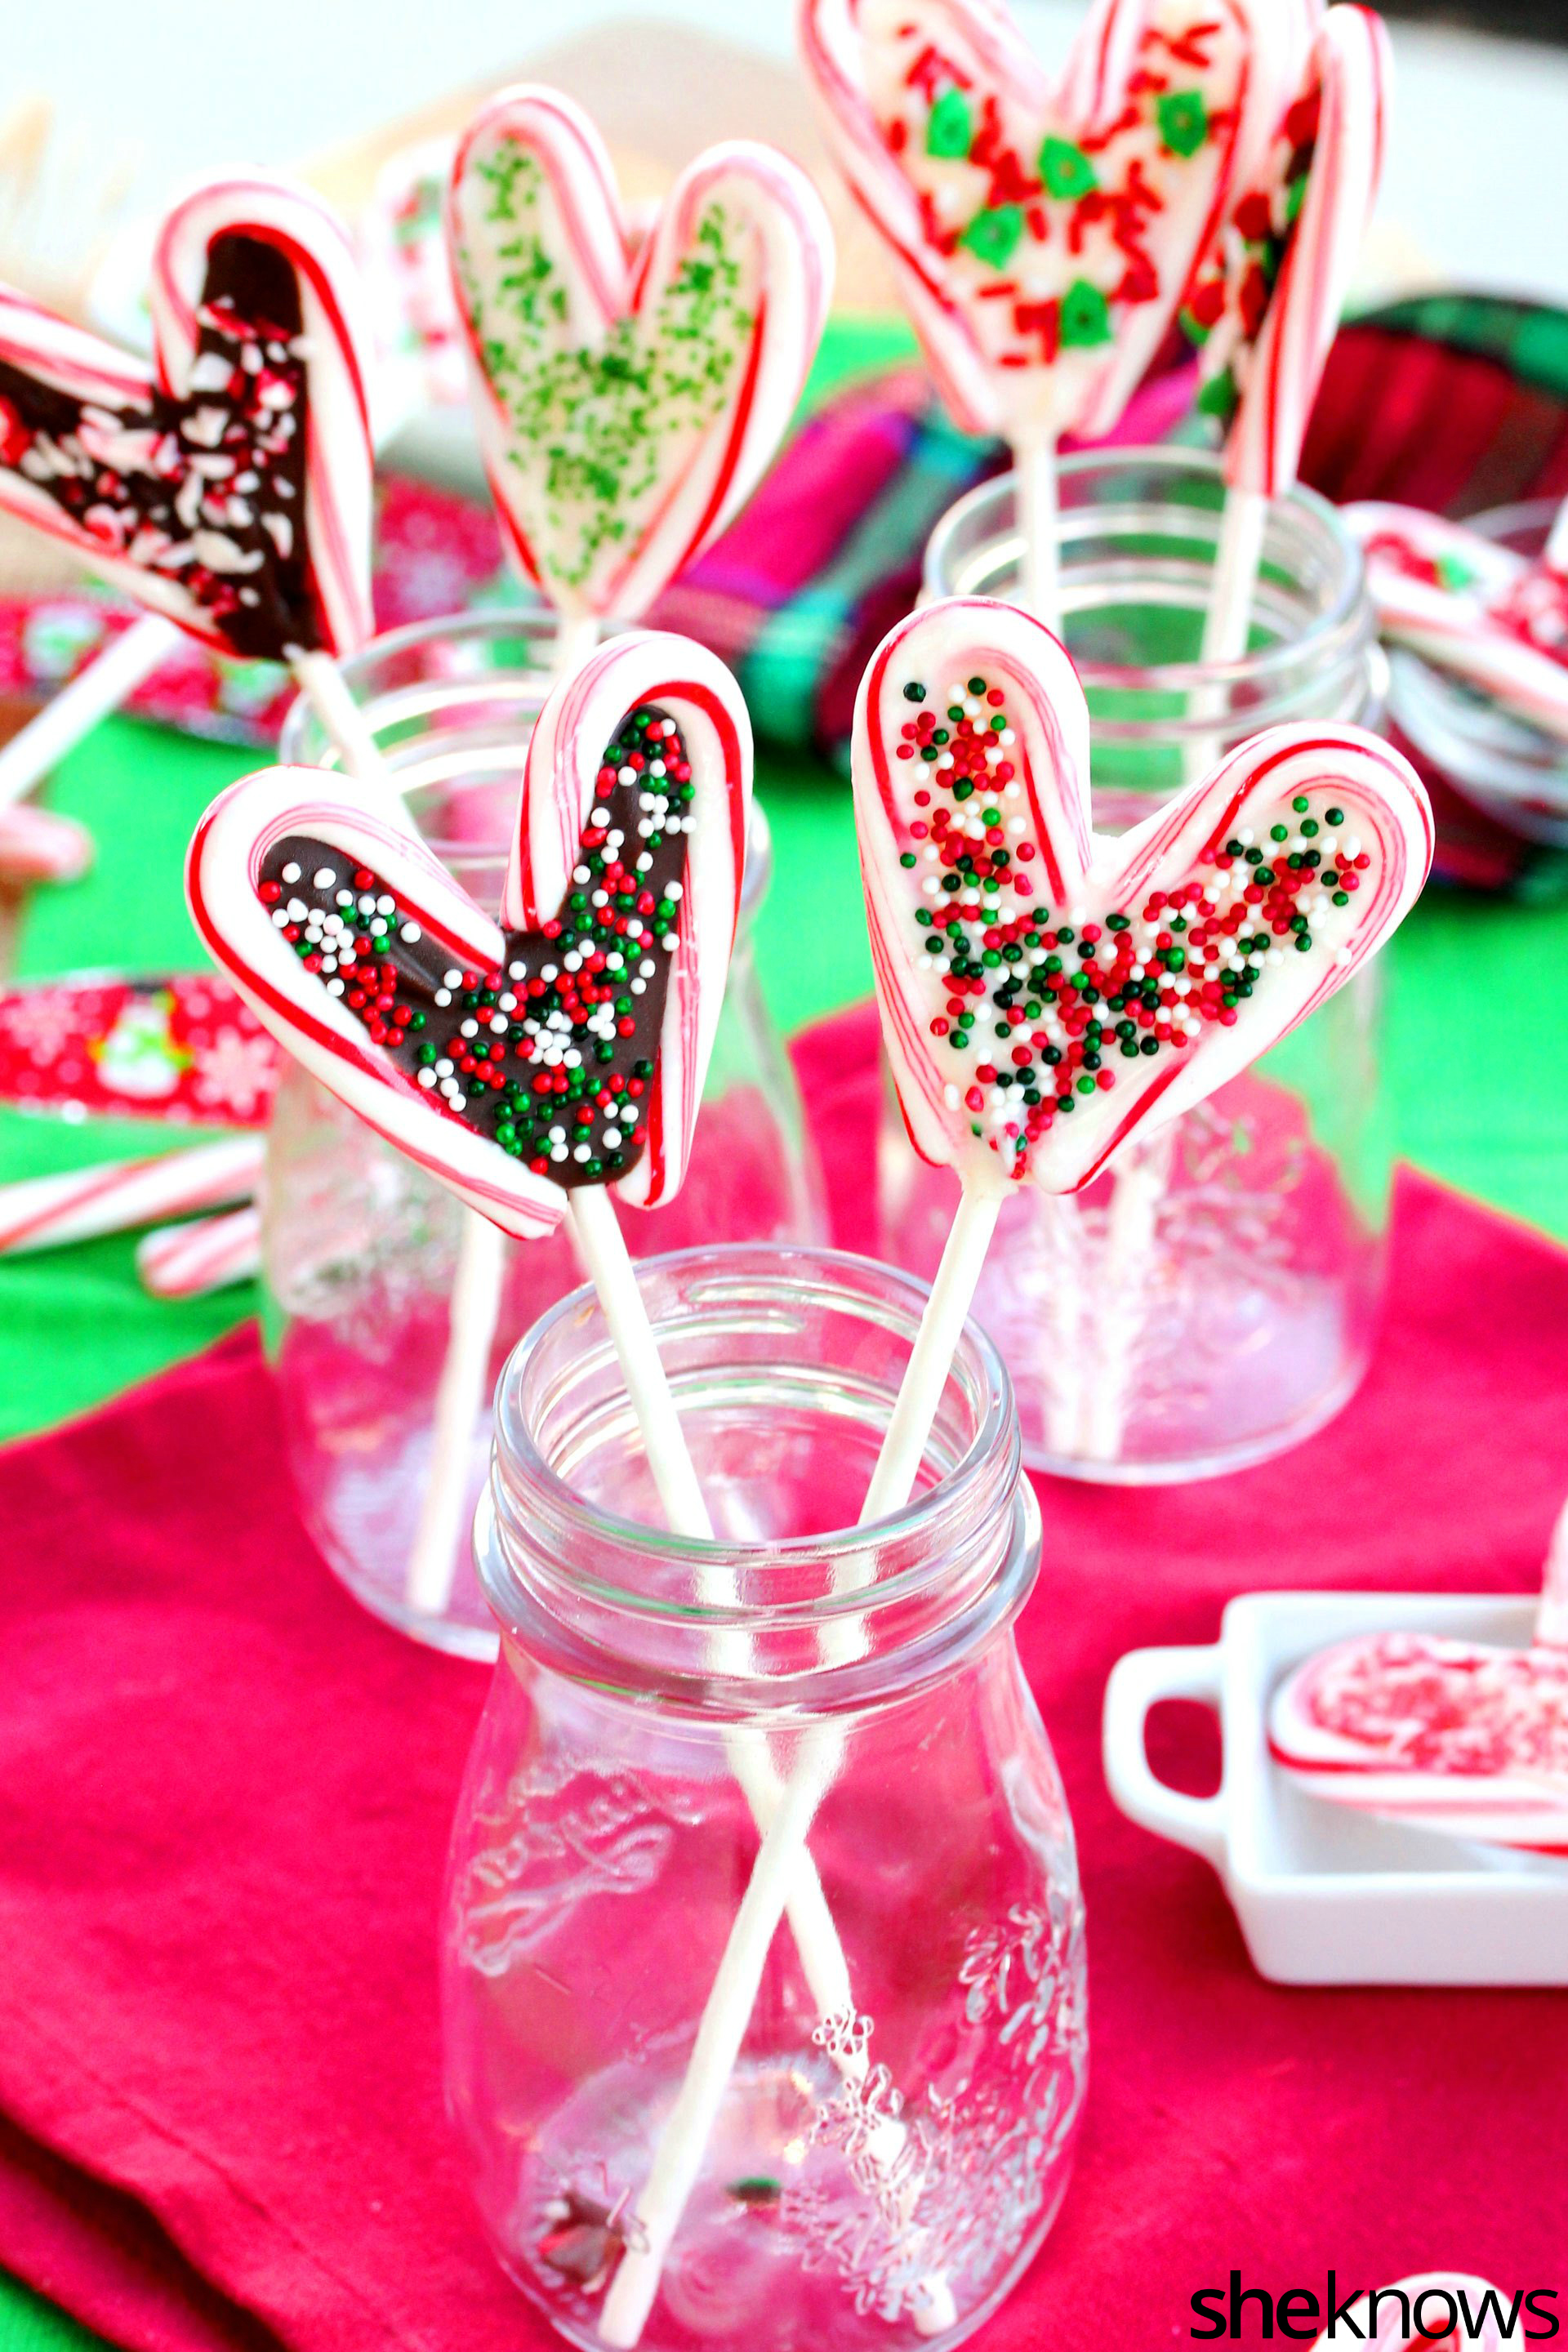 chocolate-candy-cane-holiday-gift